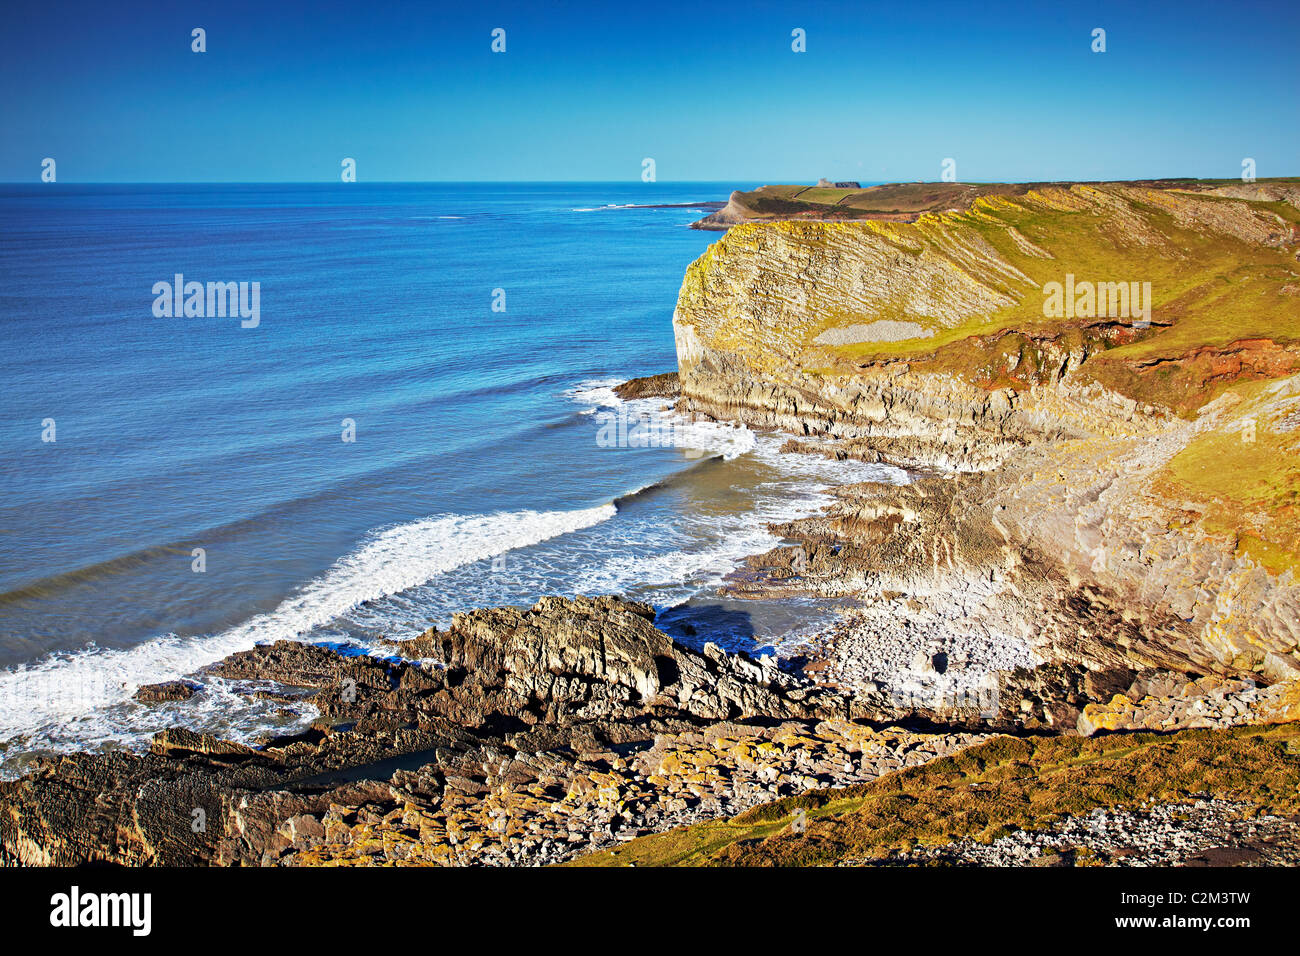 Red Chamber, Gower, Wales - Stock Image